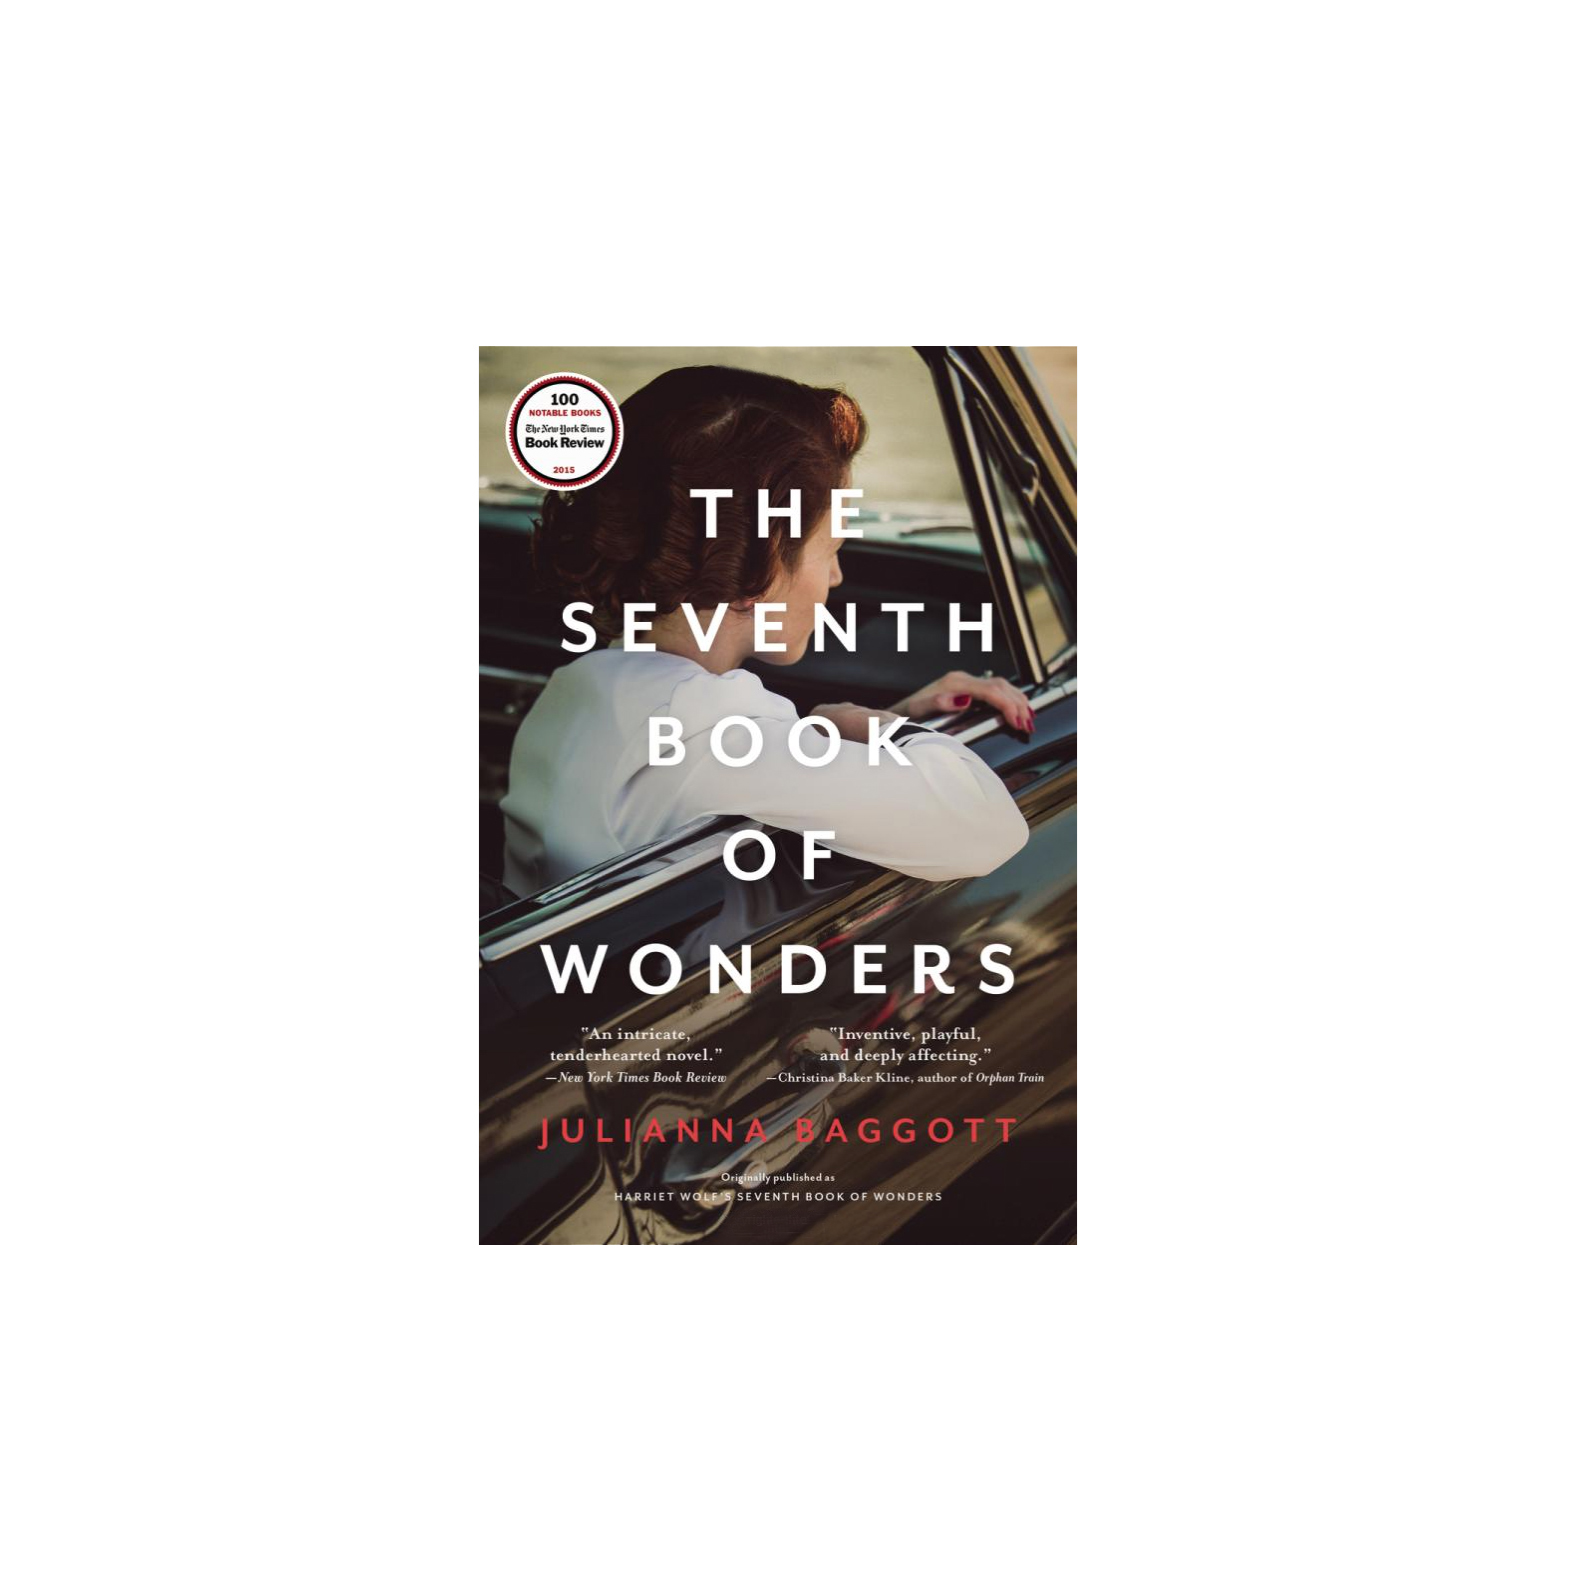 The Seventh Book of Wonders, by Julianna Baggott